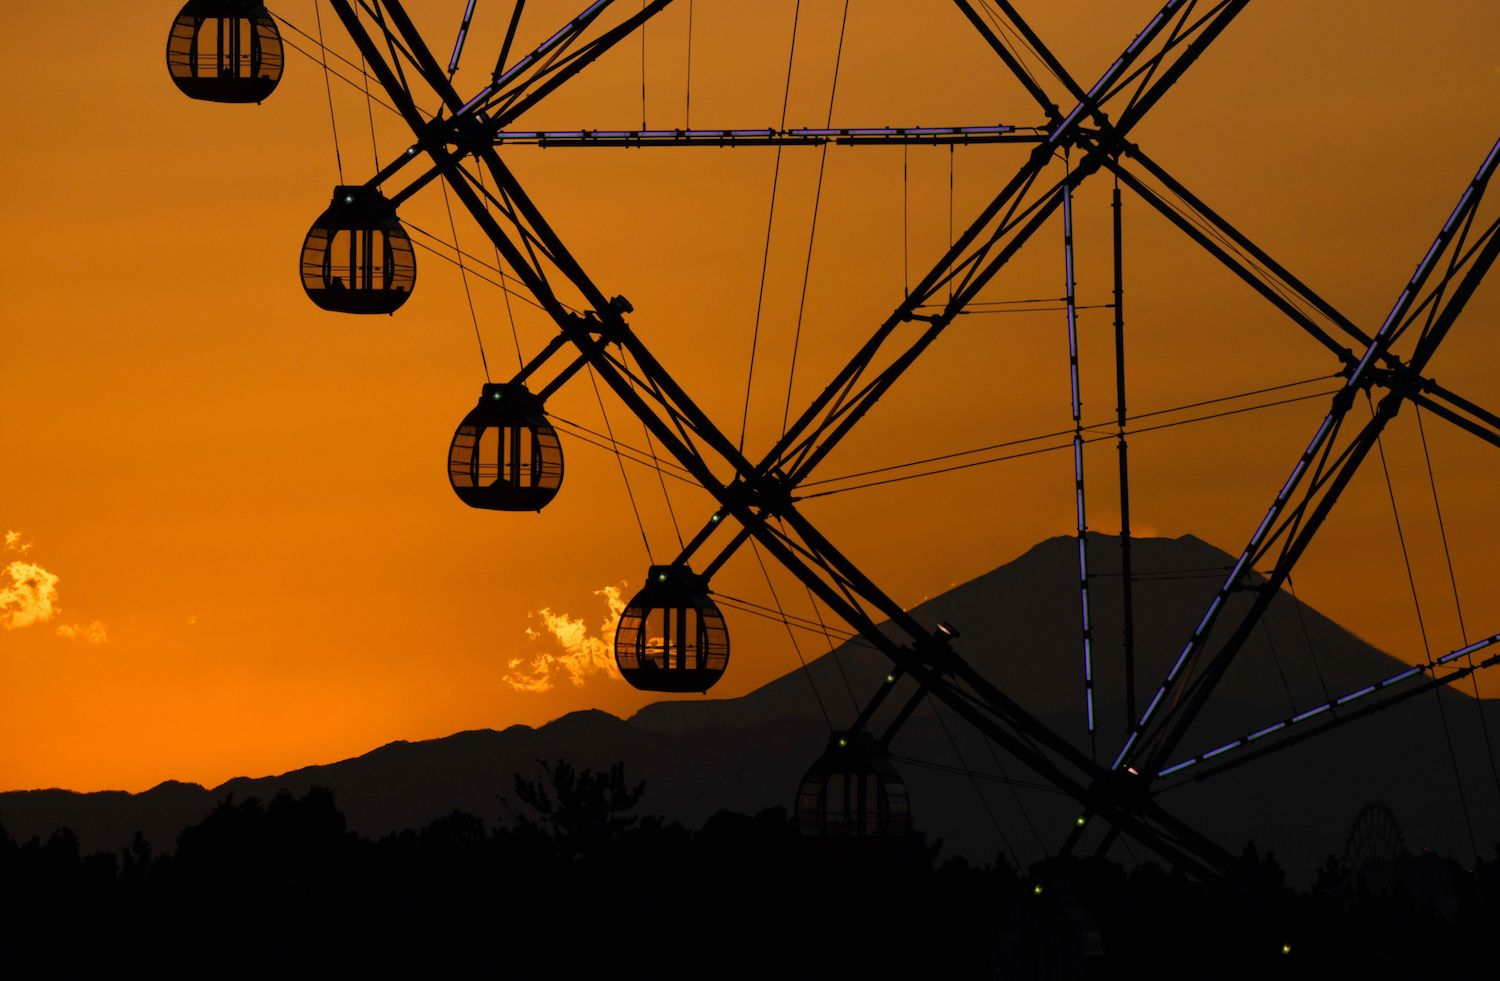 Japan's highest mountain Mt. Fuji is seen in the background over a ferris wheel during sunset at Kasai Rinkai Park in Tokyo on Feb. 6.  (KAZUHIRO NOGI/AFP/Getty Images)